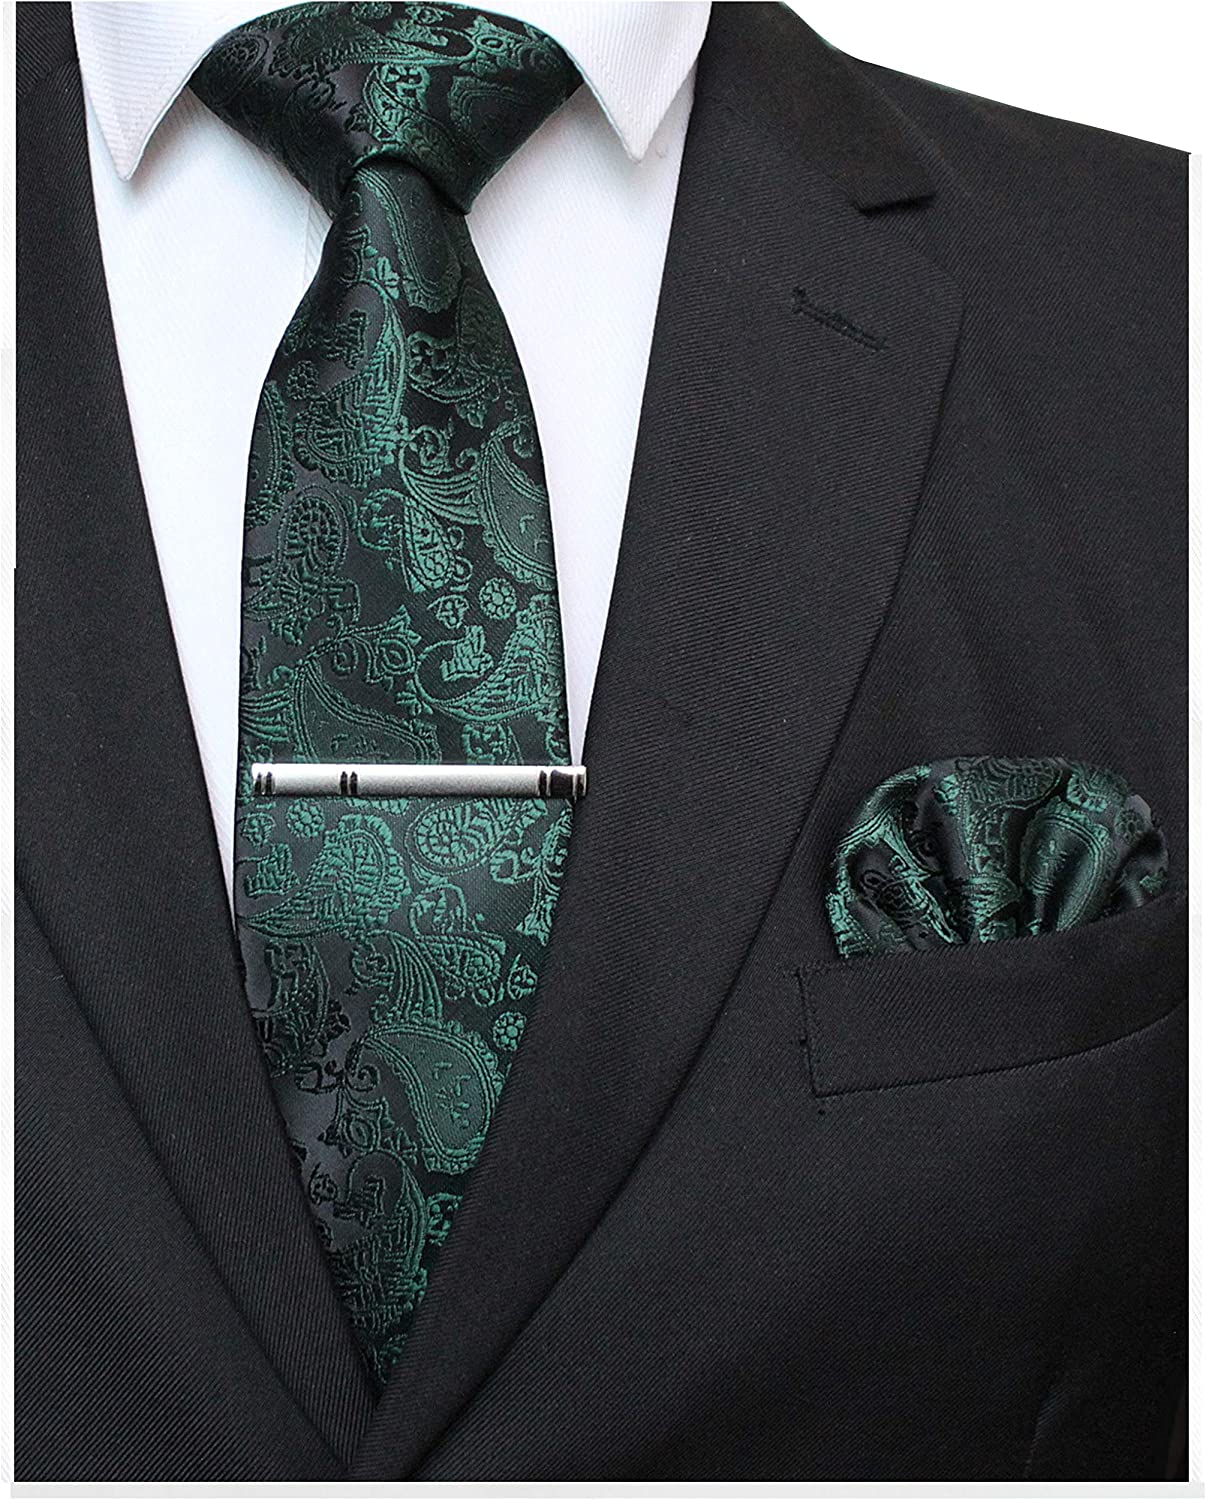 JEMYGINS Mens Solid Color Paisley Necktie and Pocket Square with Tie Clip Sets